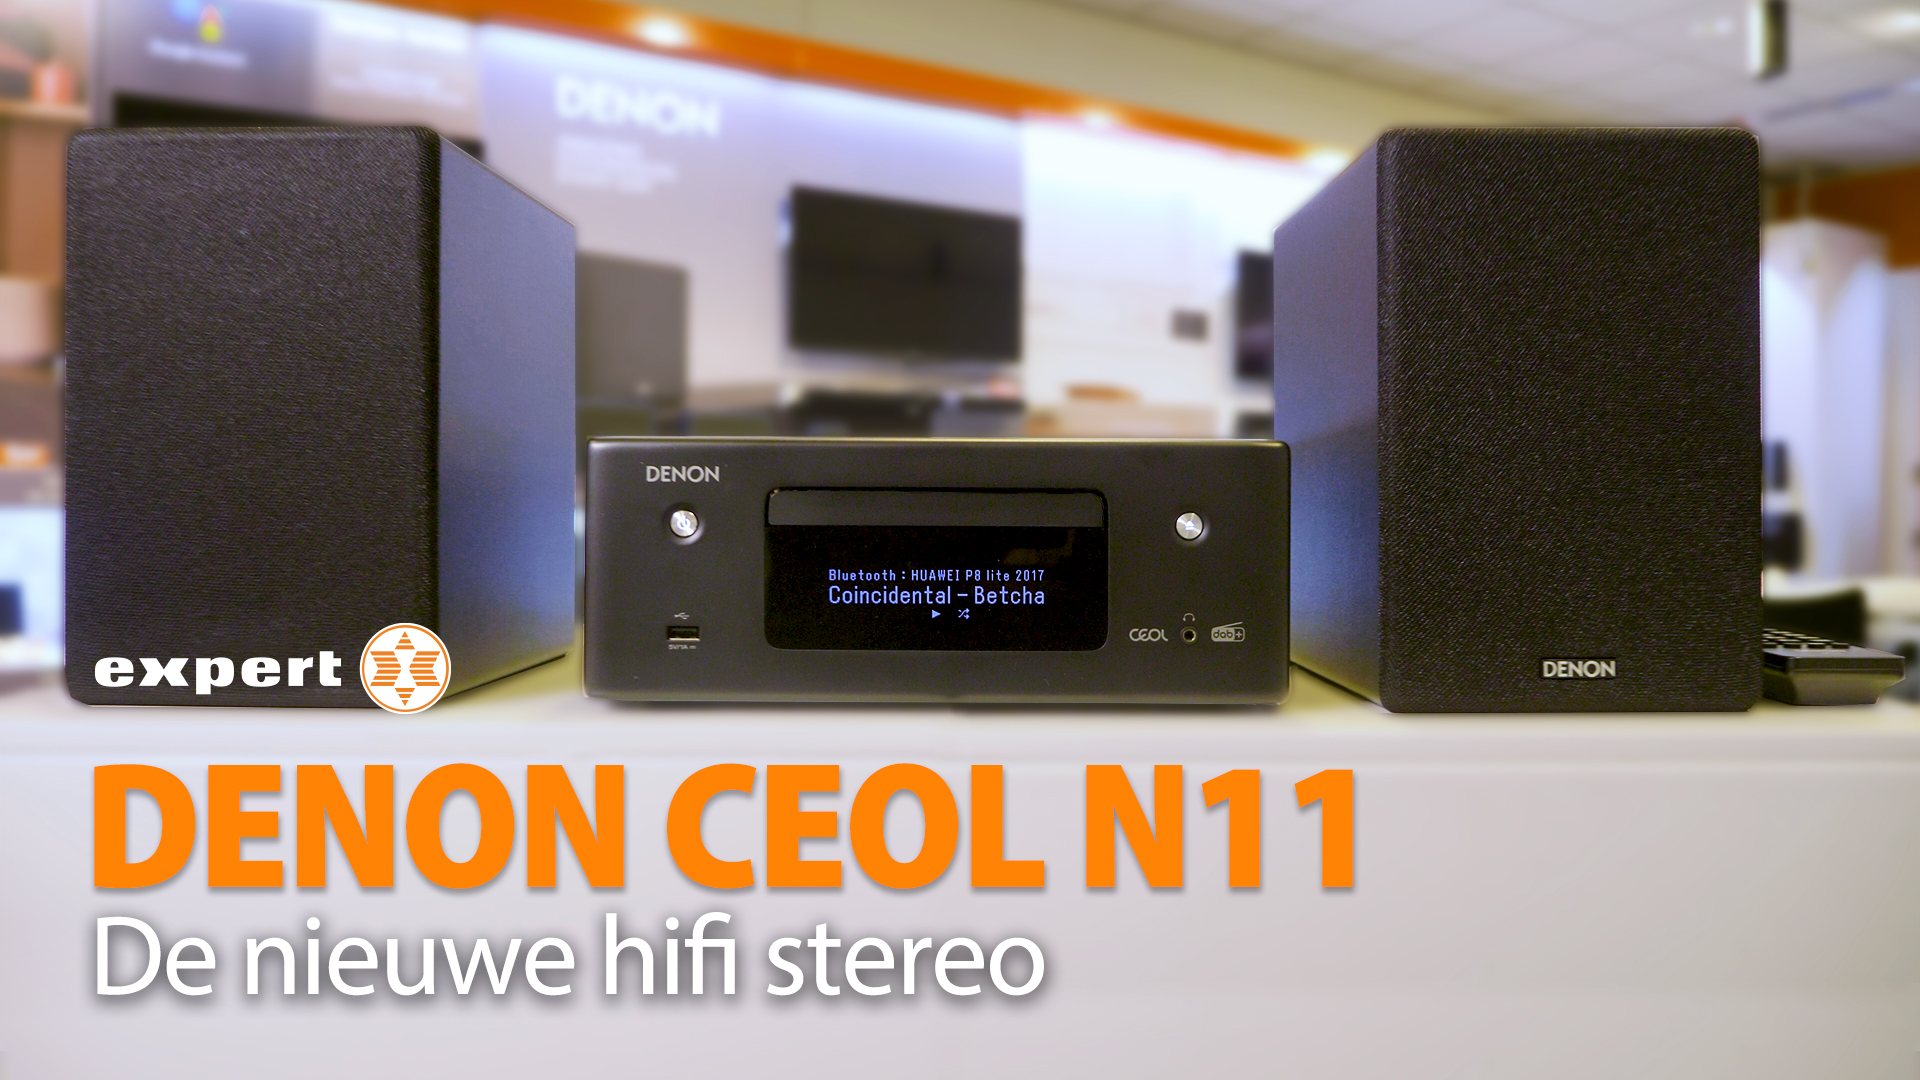 Denon CEOL N11|  productvideo | Expert